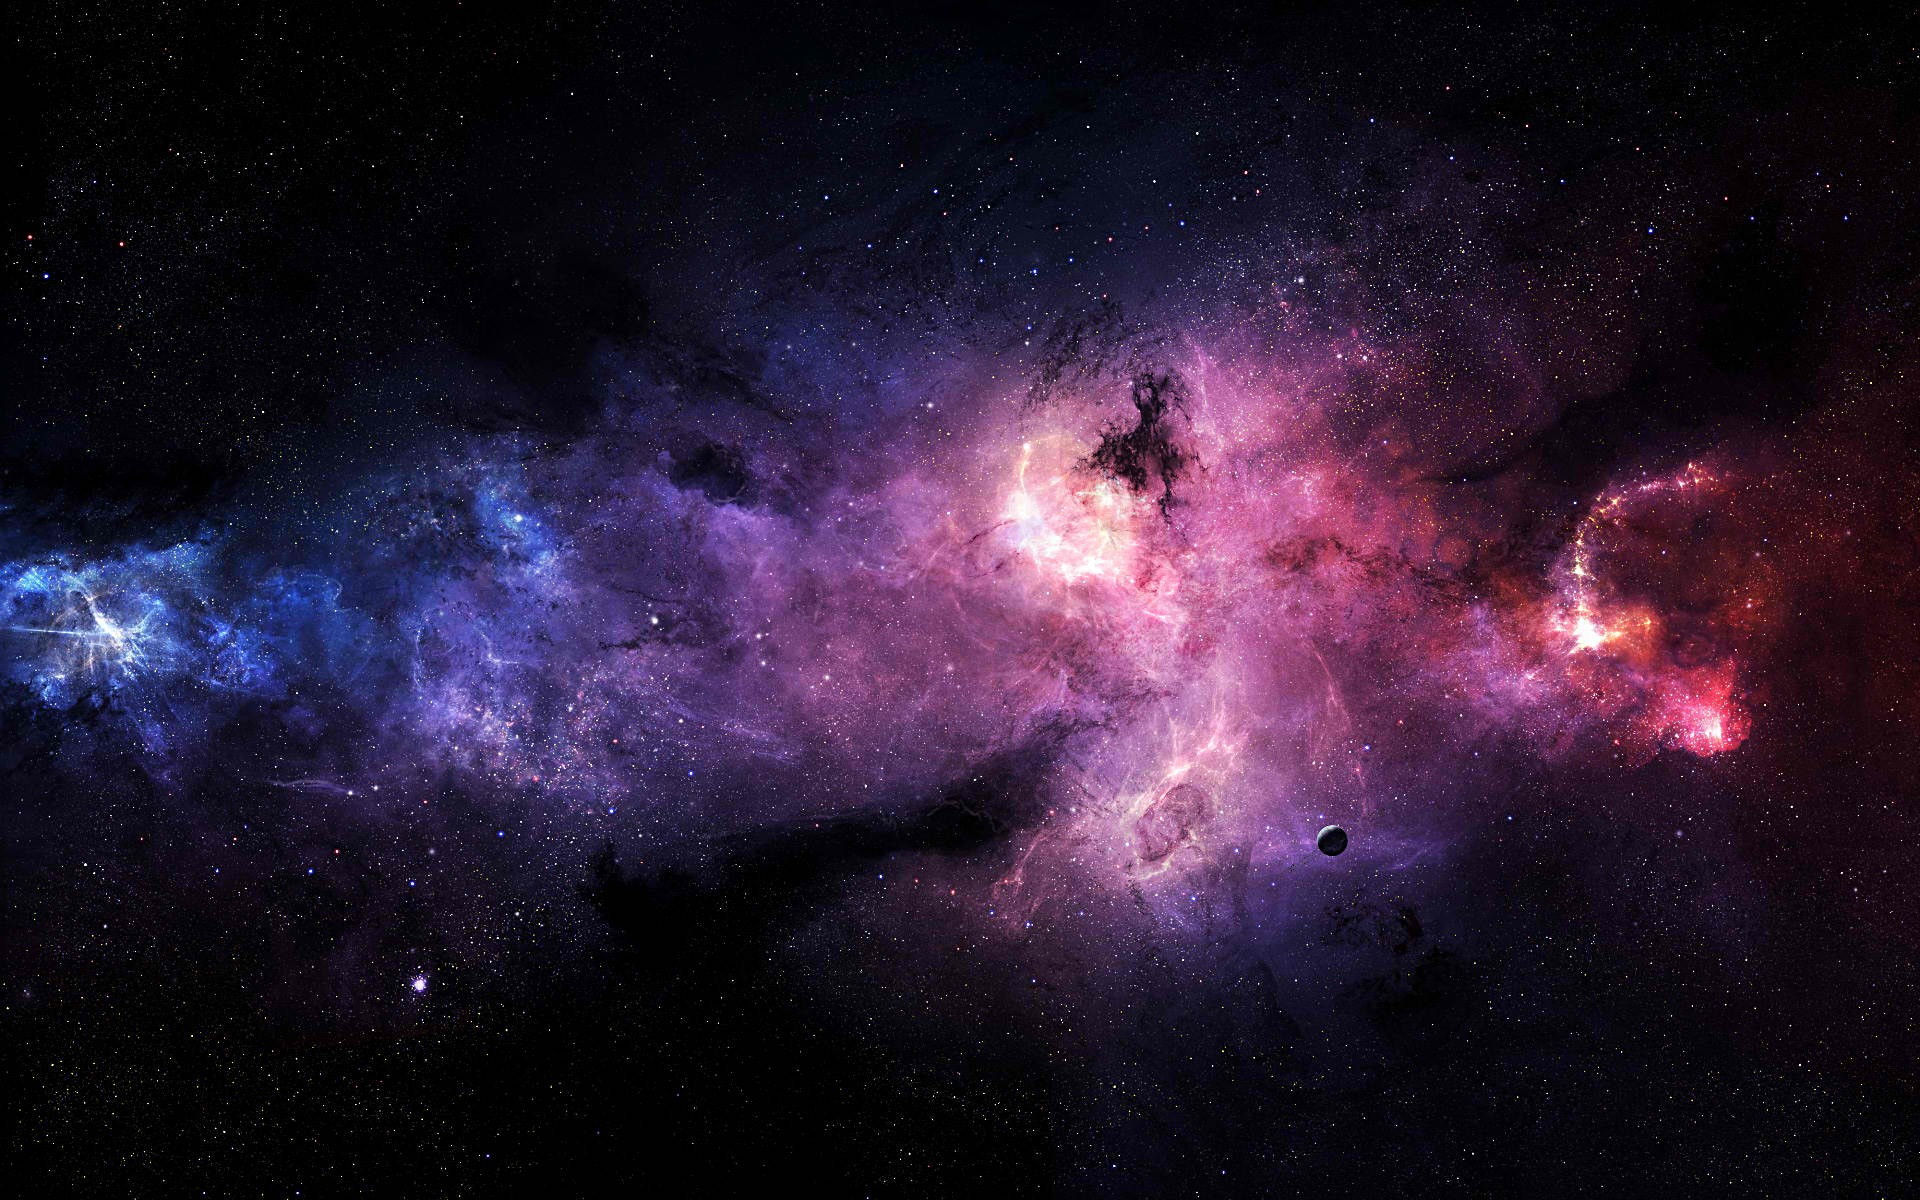 Galaxy Background Tumblr 1 Download Free Beautiful Wallpapers For